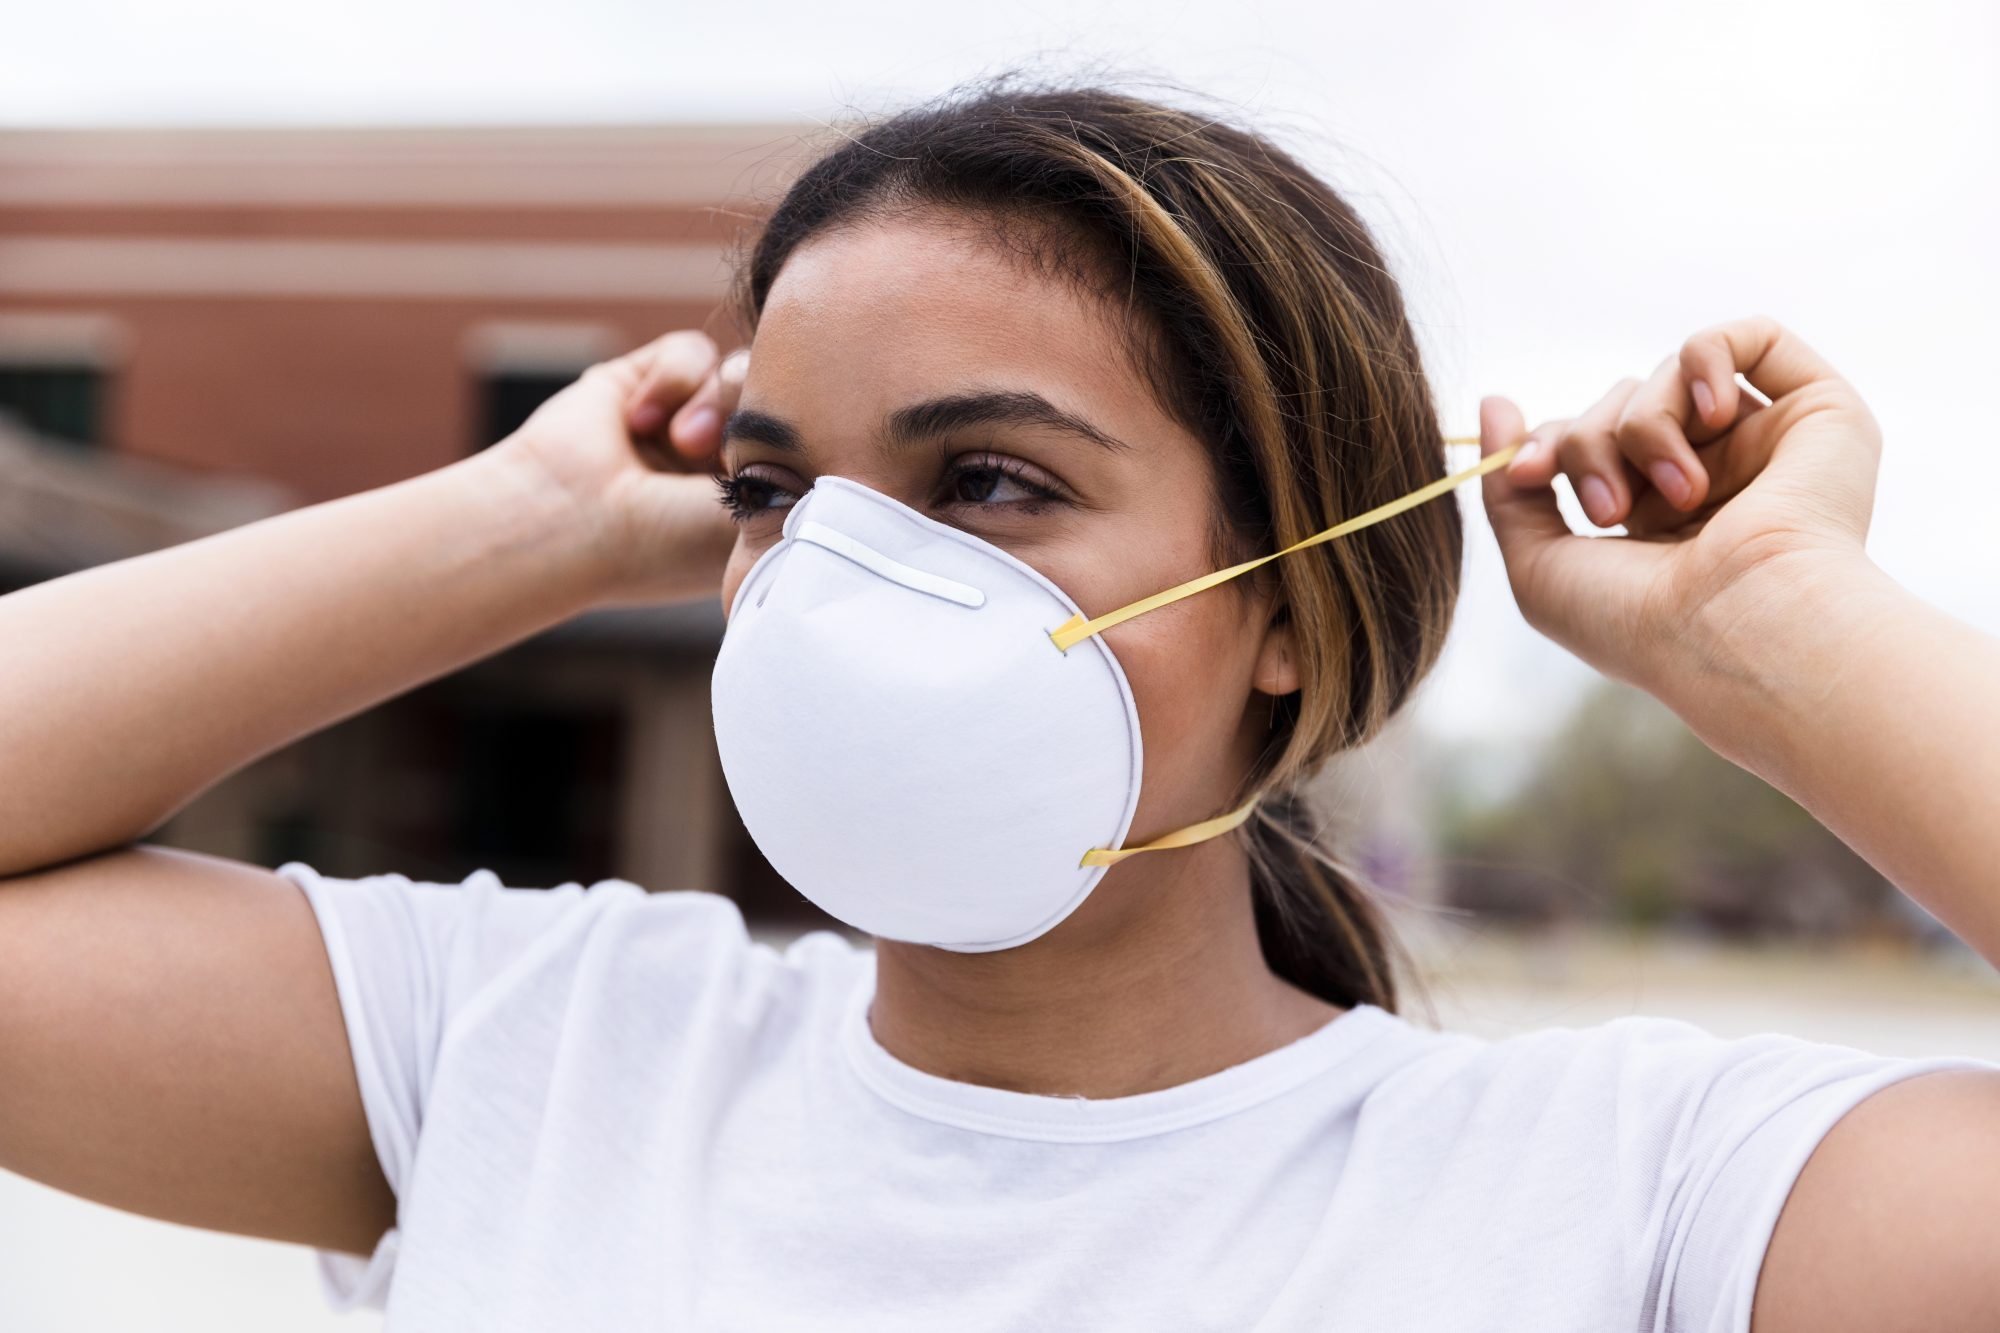 woman putting on N95 face mask